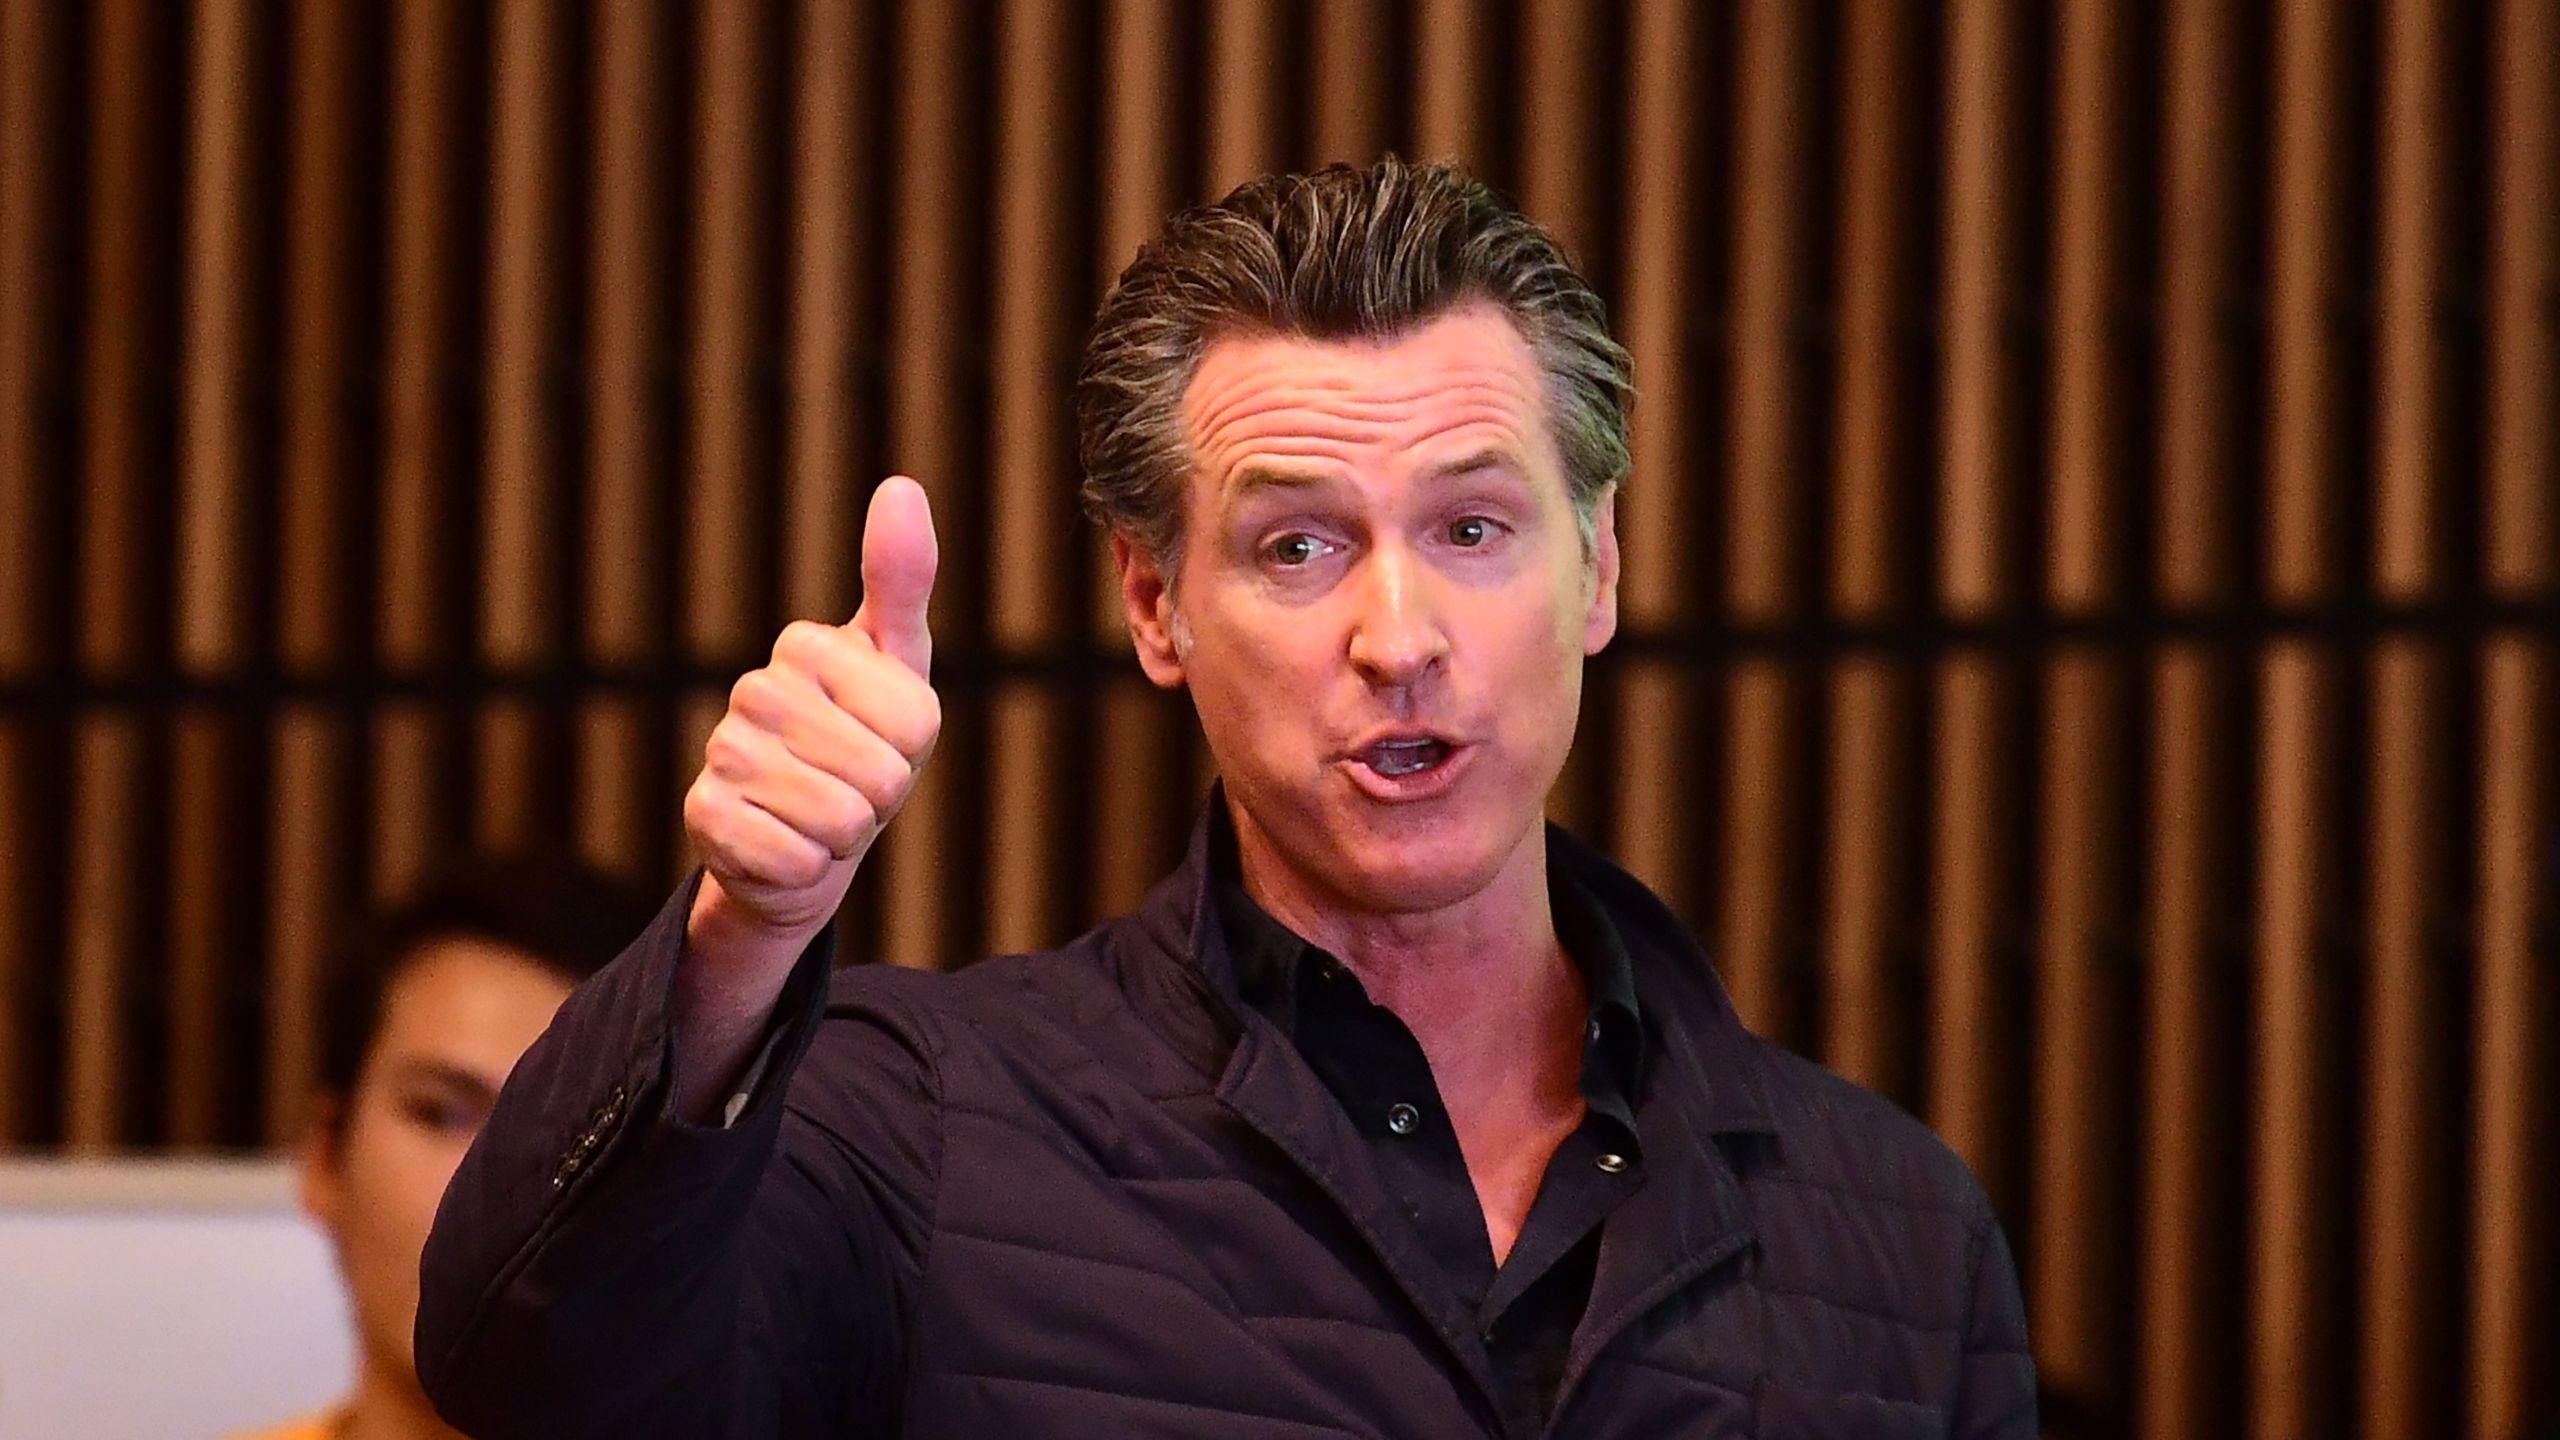 California Governor Gavin Newsom gives a thumbs up during a visit to East Los Angeles College in Monterey Park on Aug. 29, 2019. (Credit: FREDERIC J. BROWN/AFP/Getty Images)